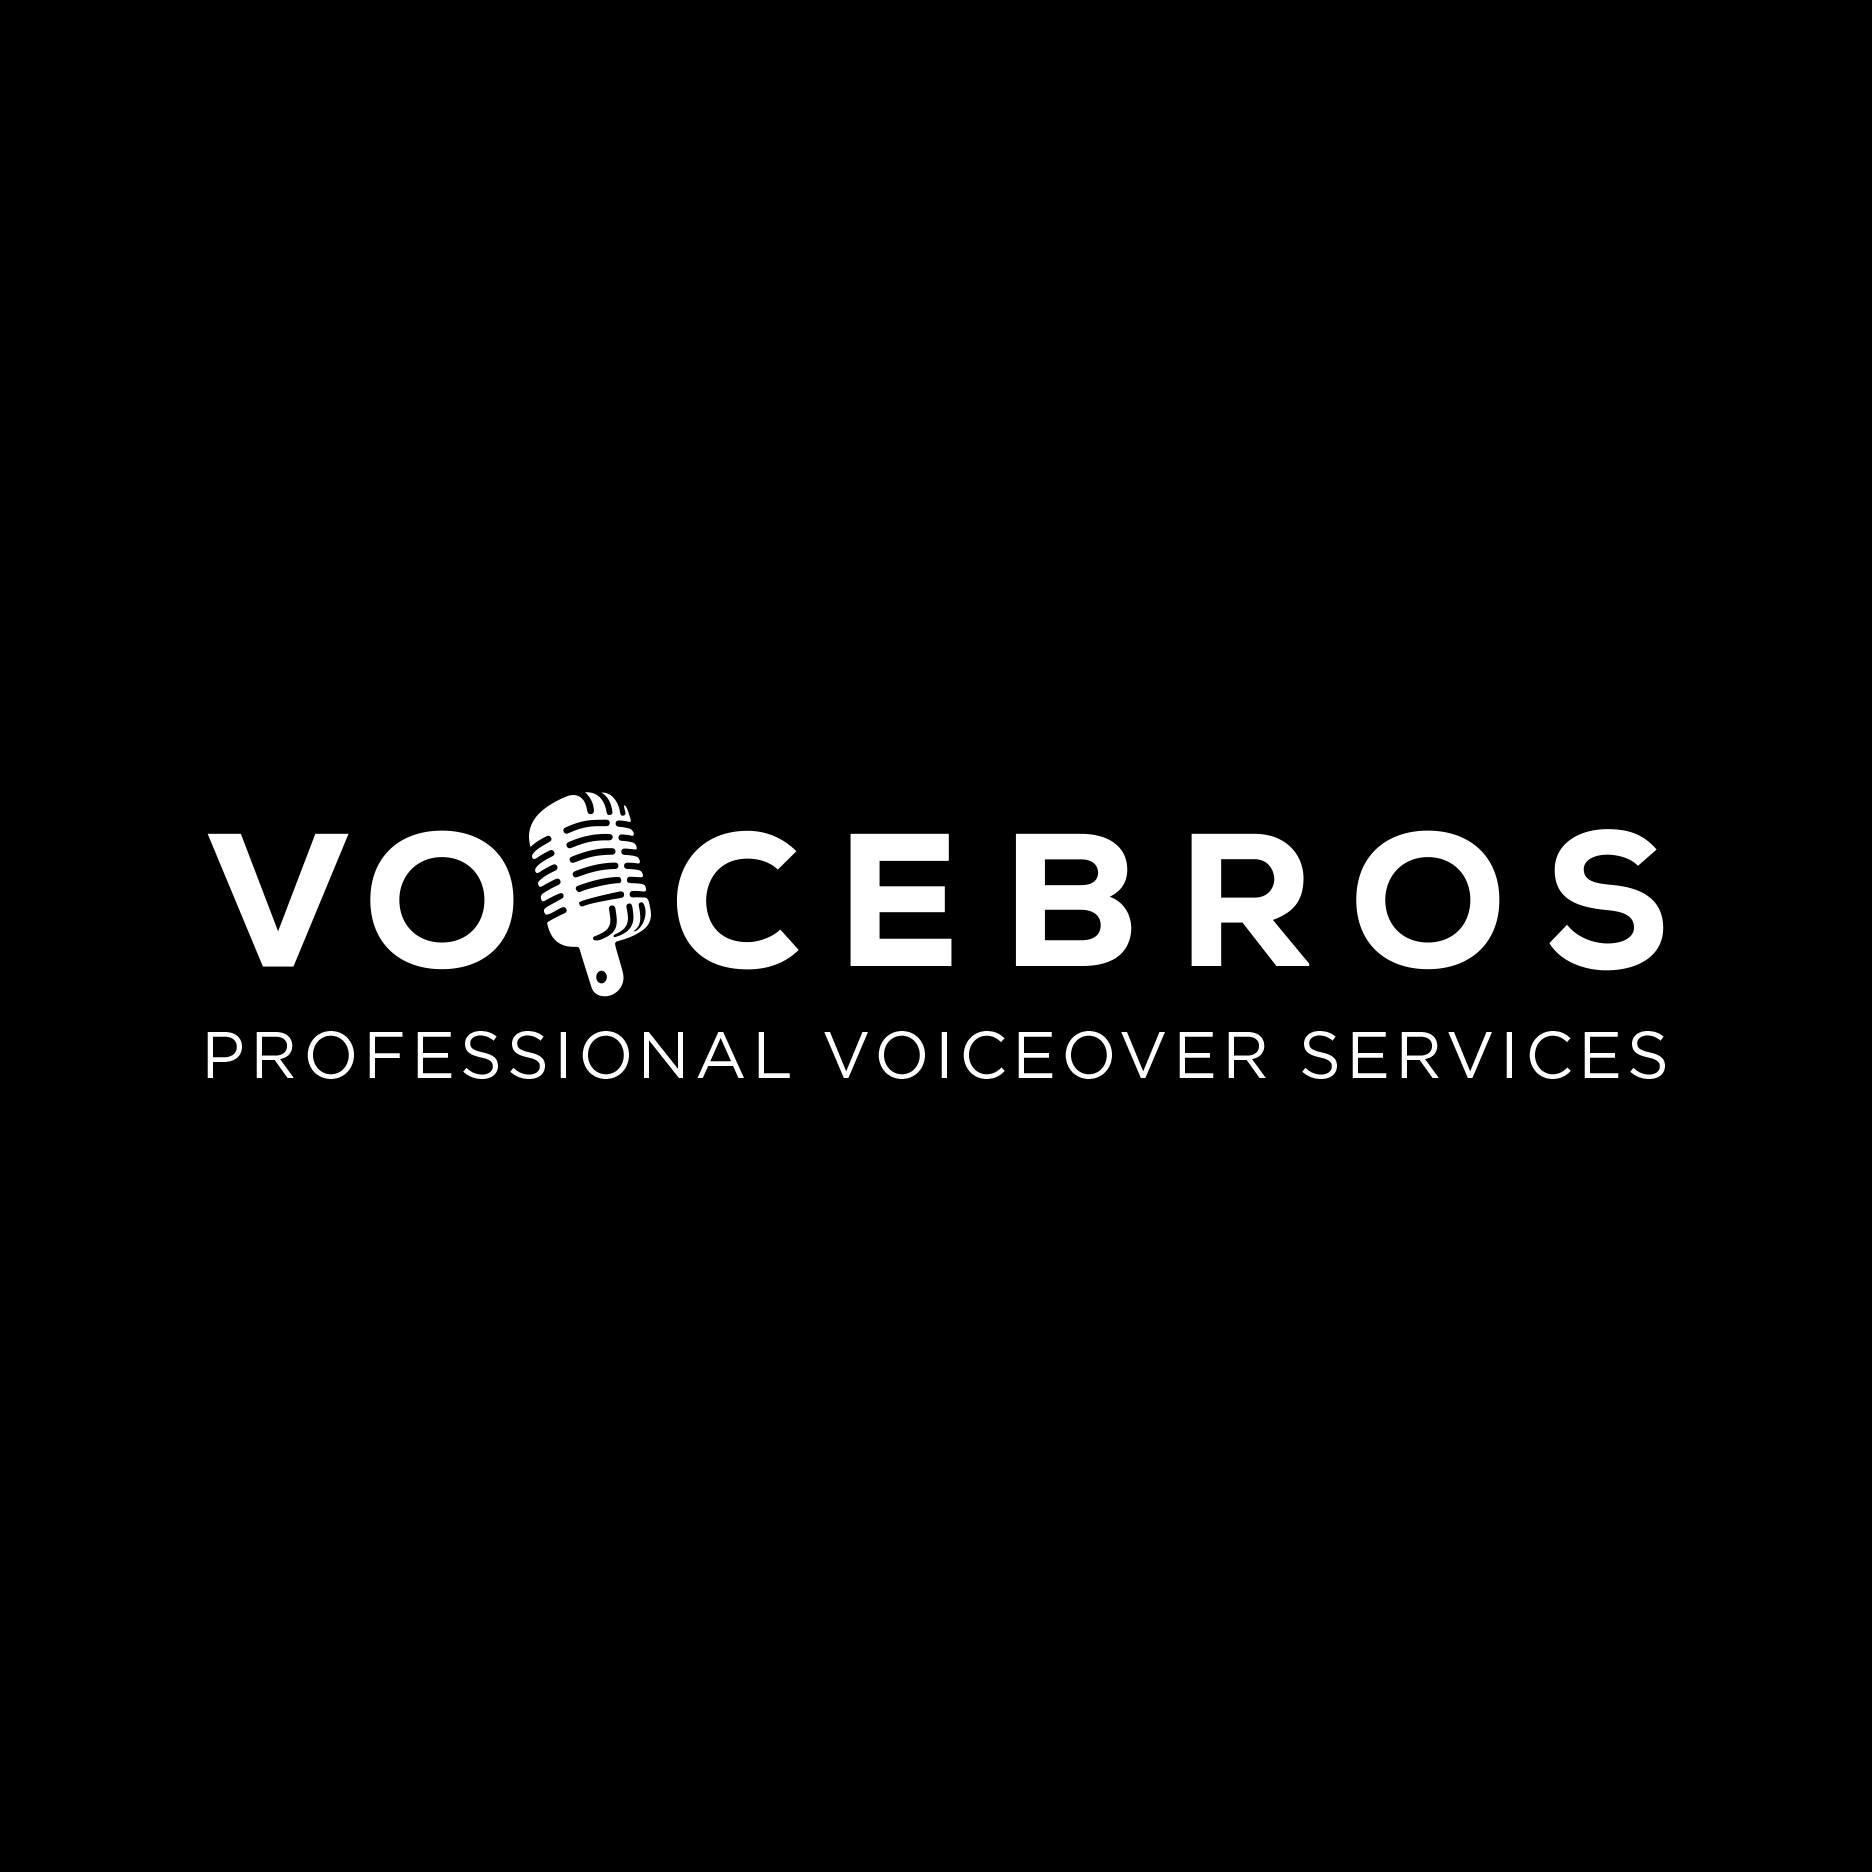 Todd Mendoza is a voice over actor